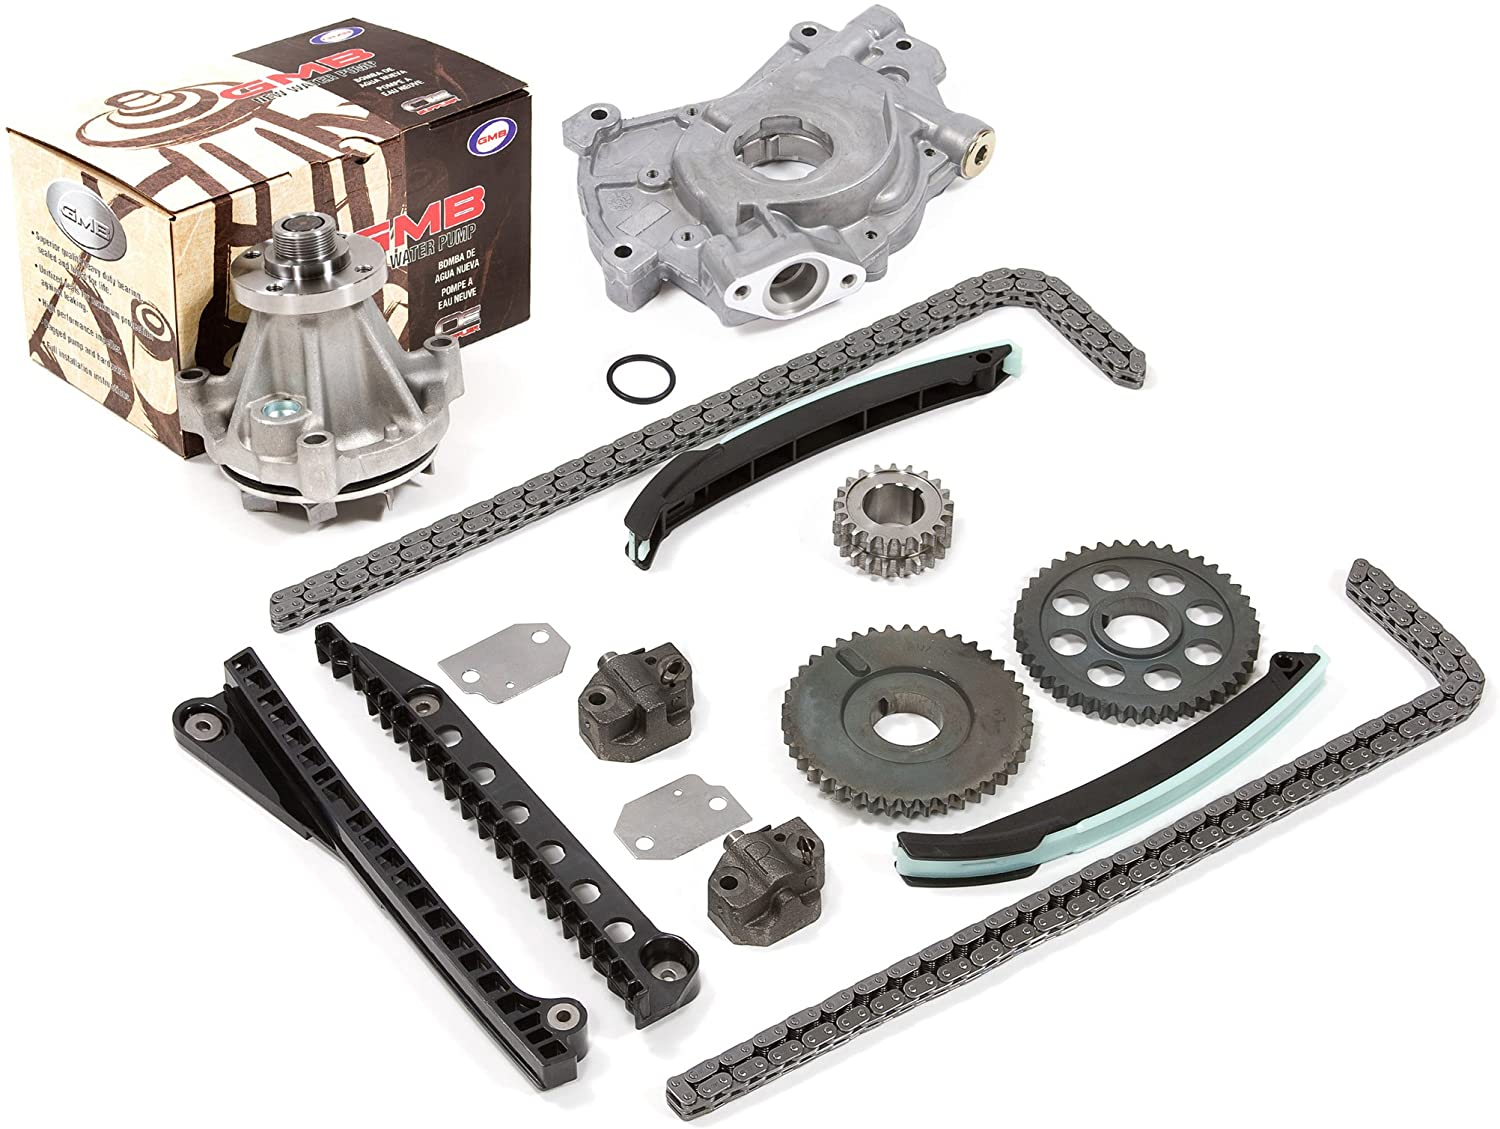 Compatible With 2002 Ford 5.4 SOHC 16V VIN L, M, Z Timing Chain Kit Oil Pump GMB Water Pump